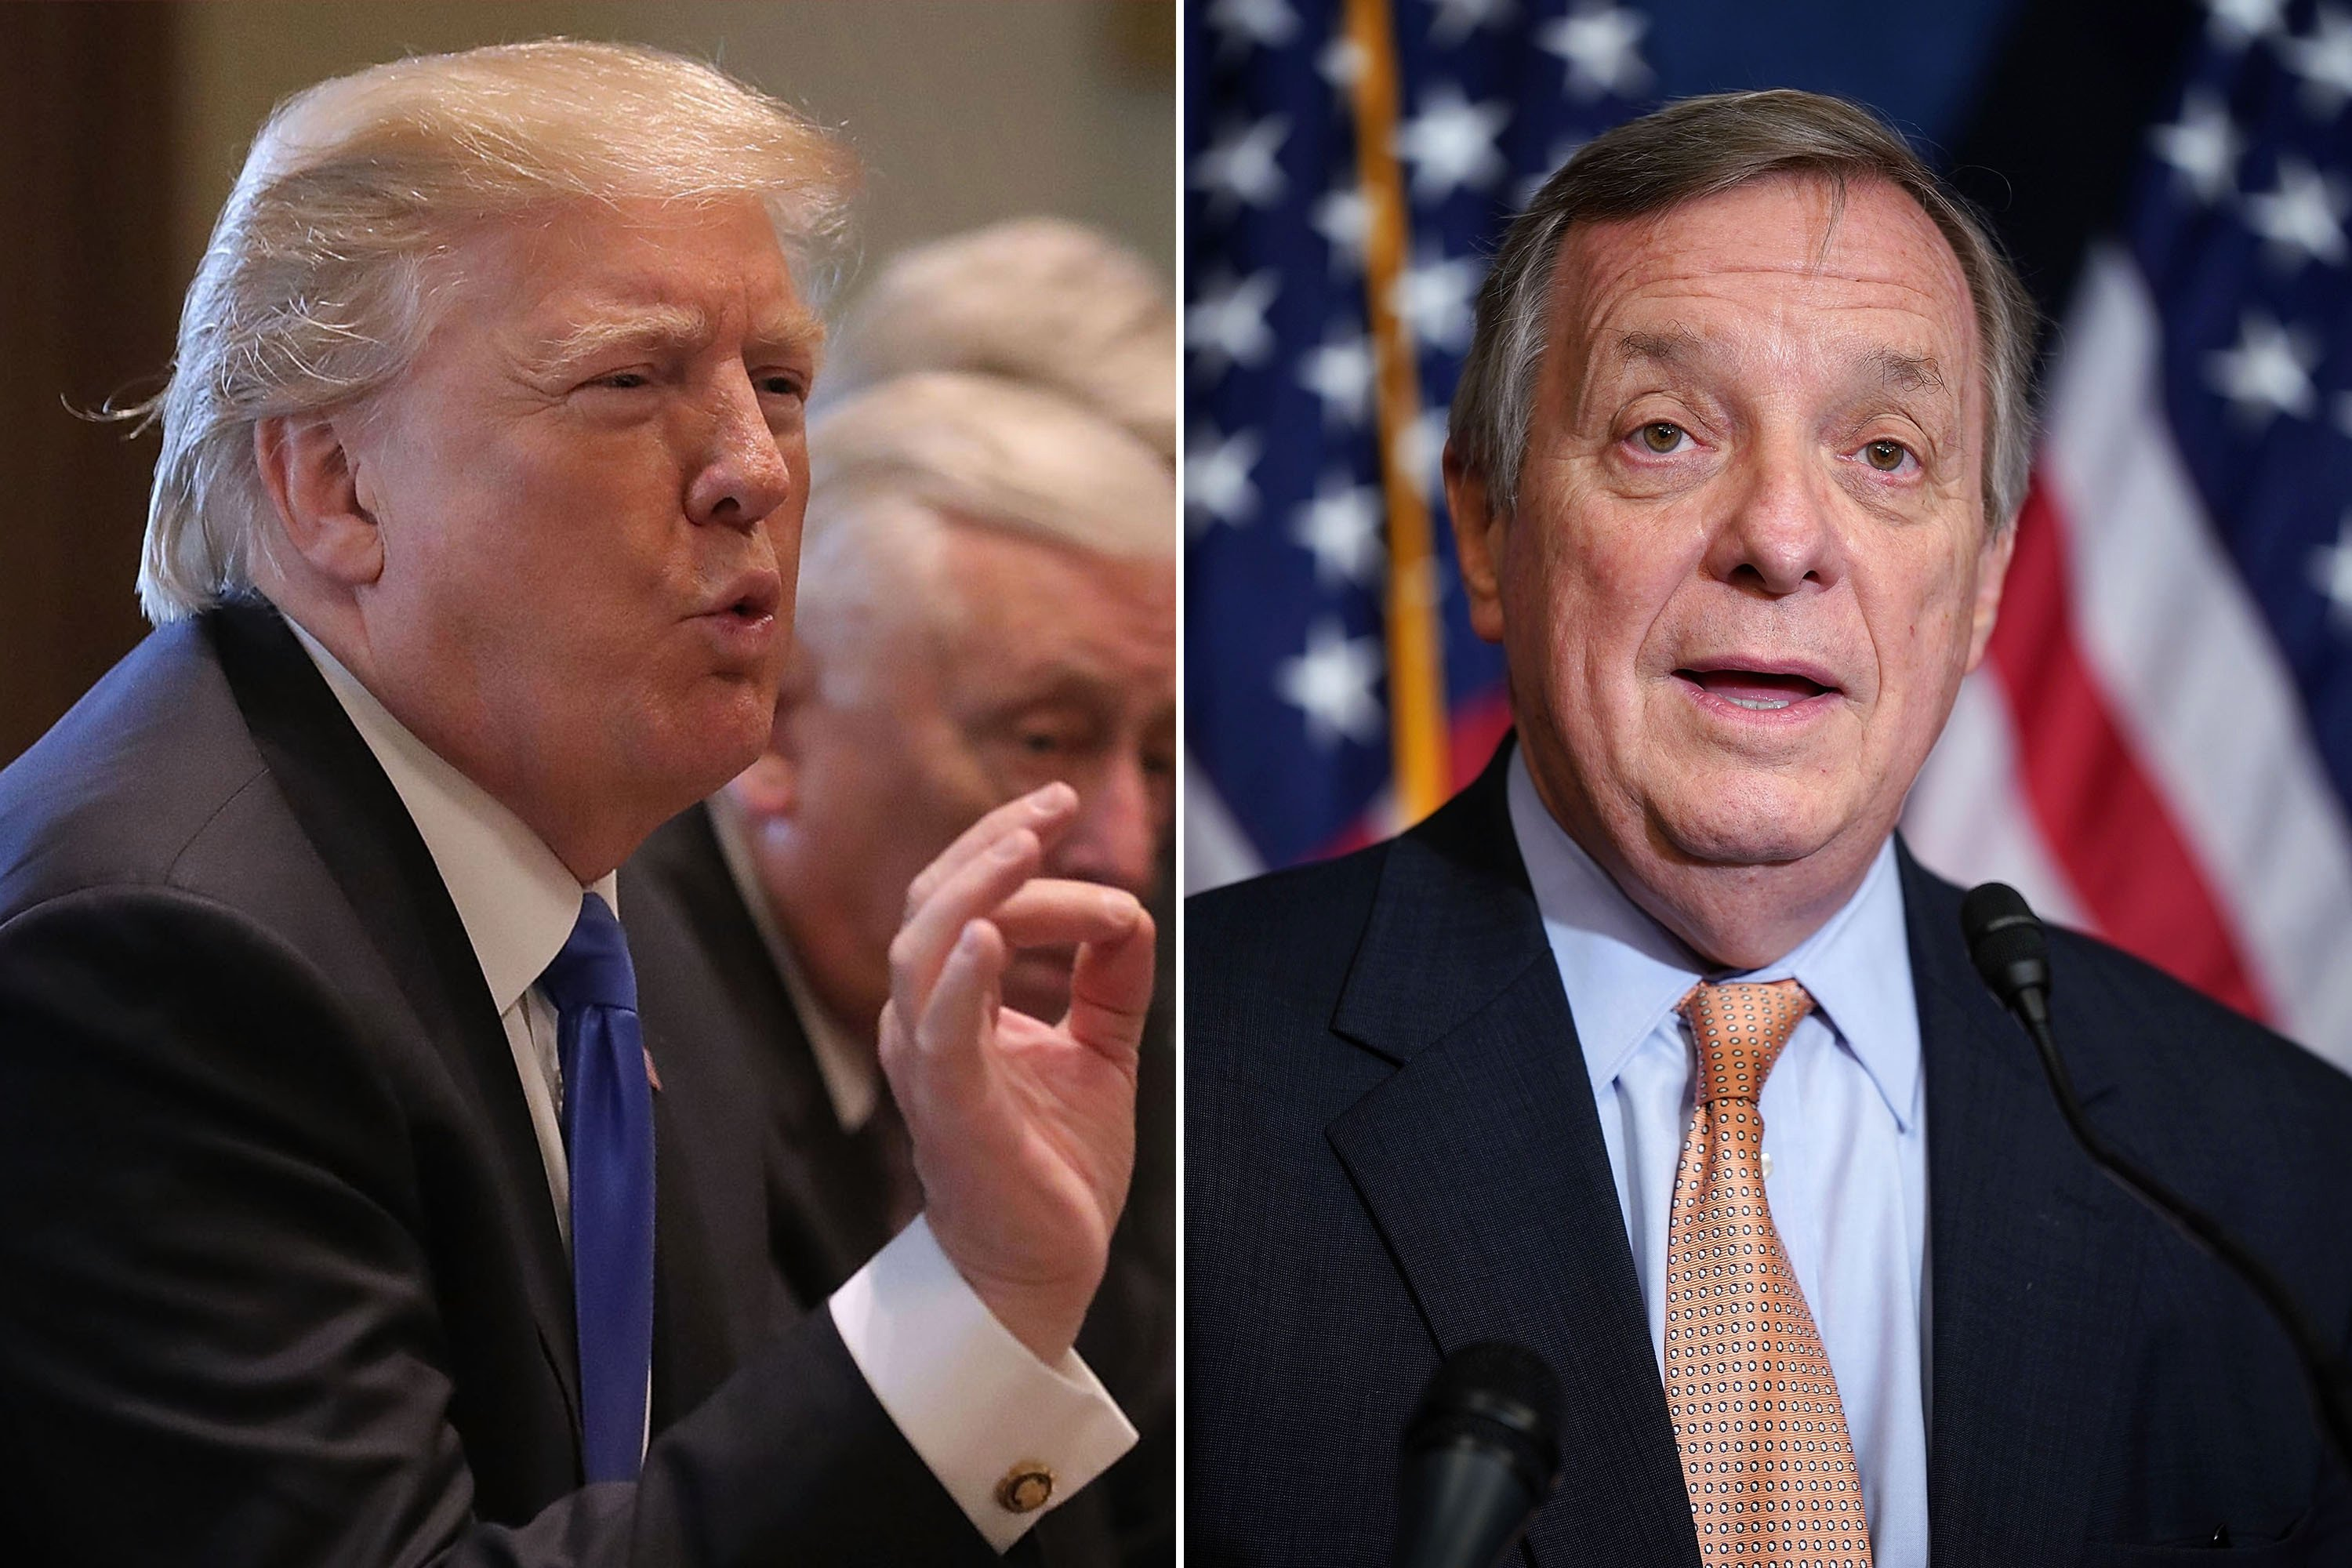 Trump blasts Senator Durbin over 'shithole countries' claims